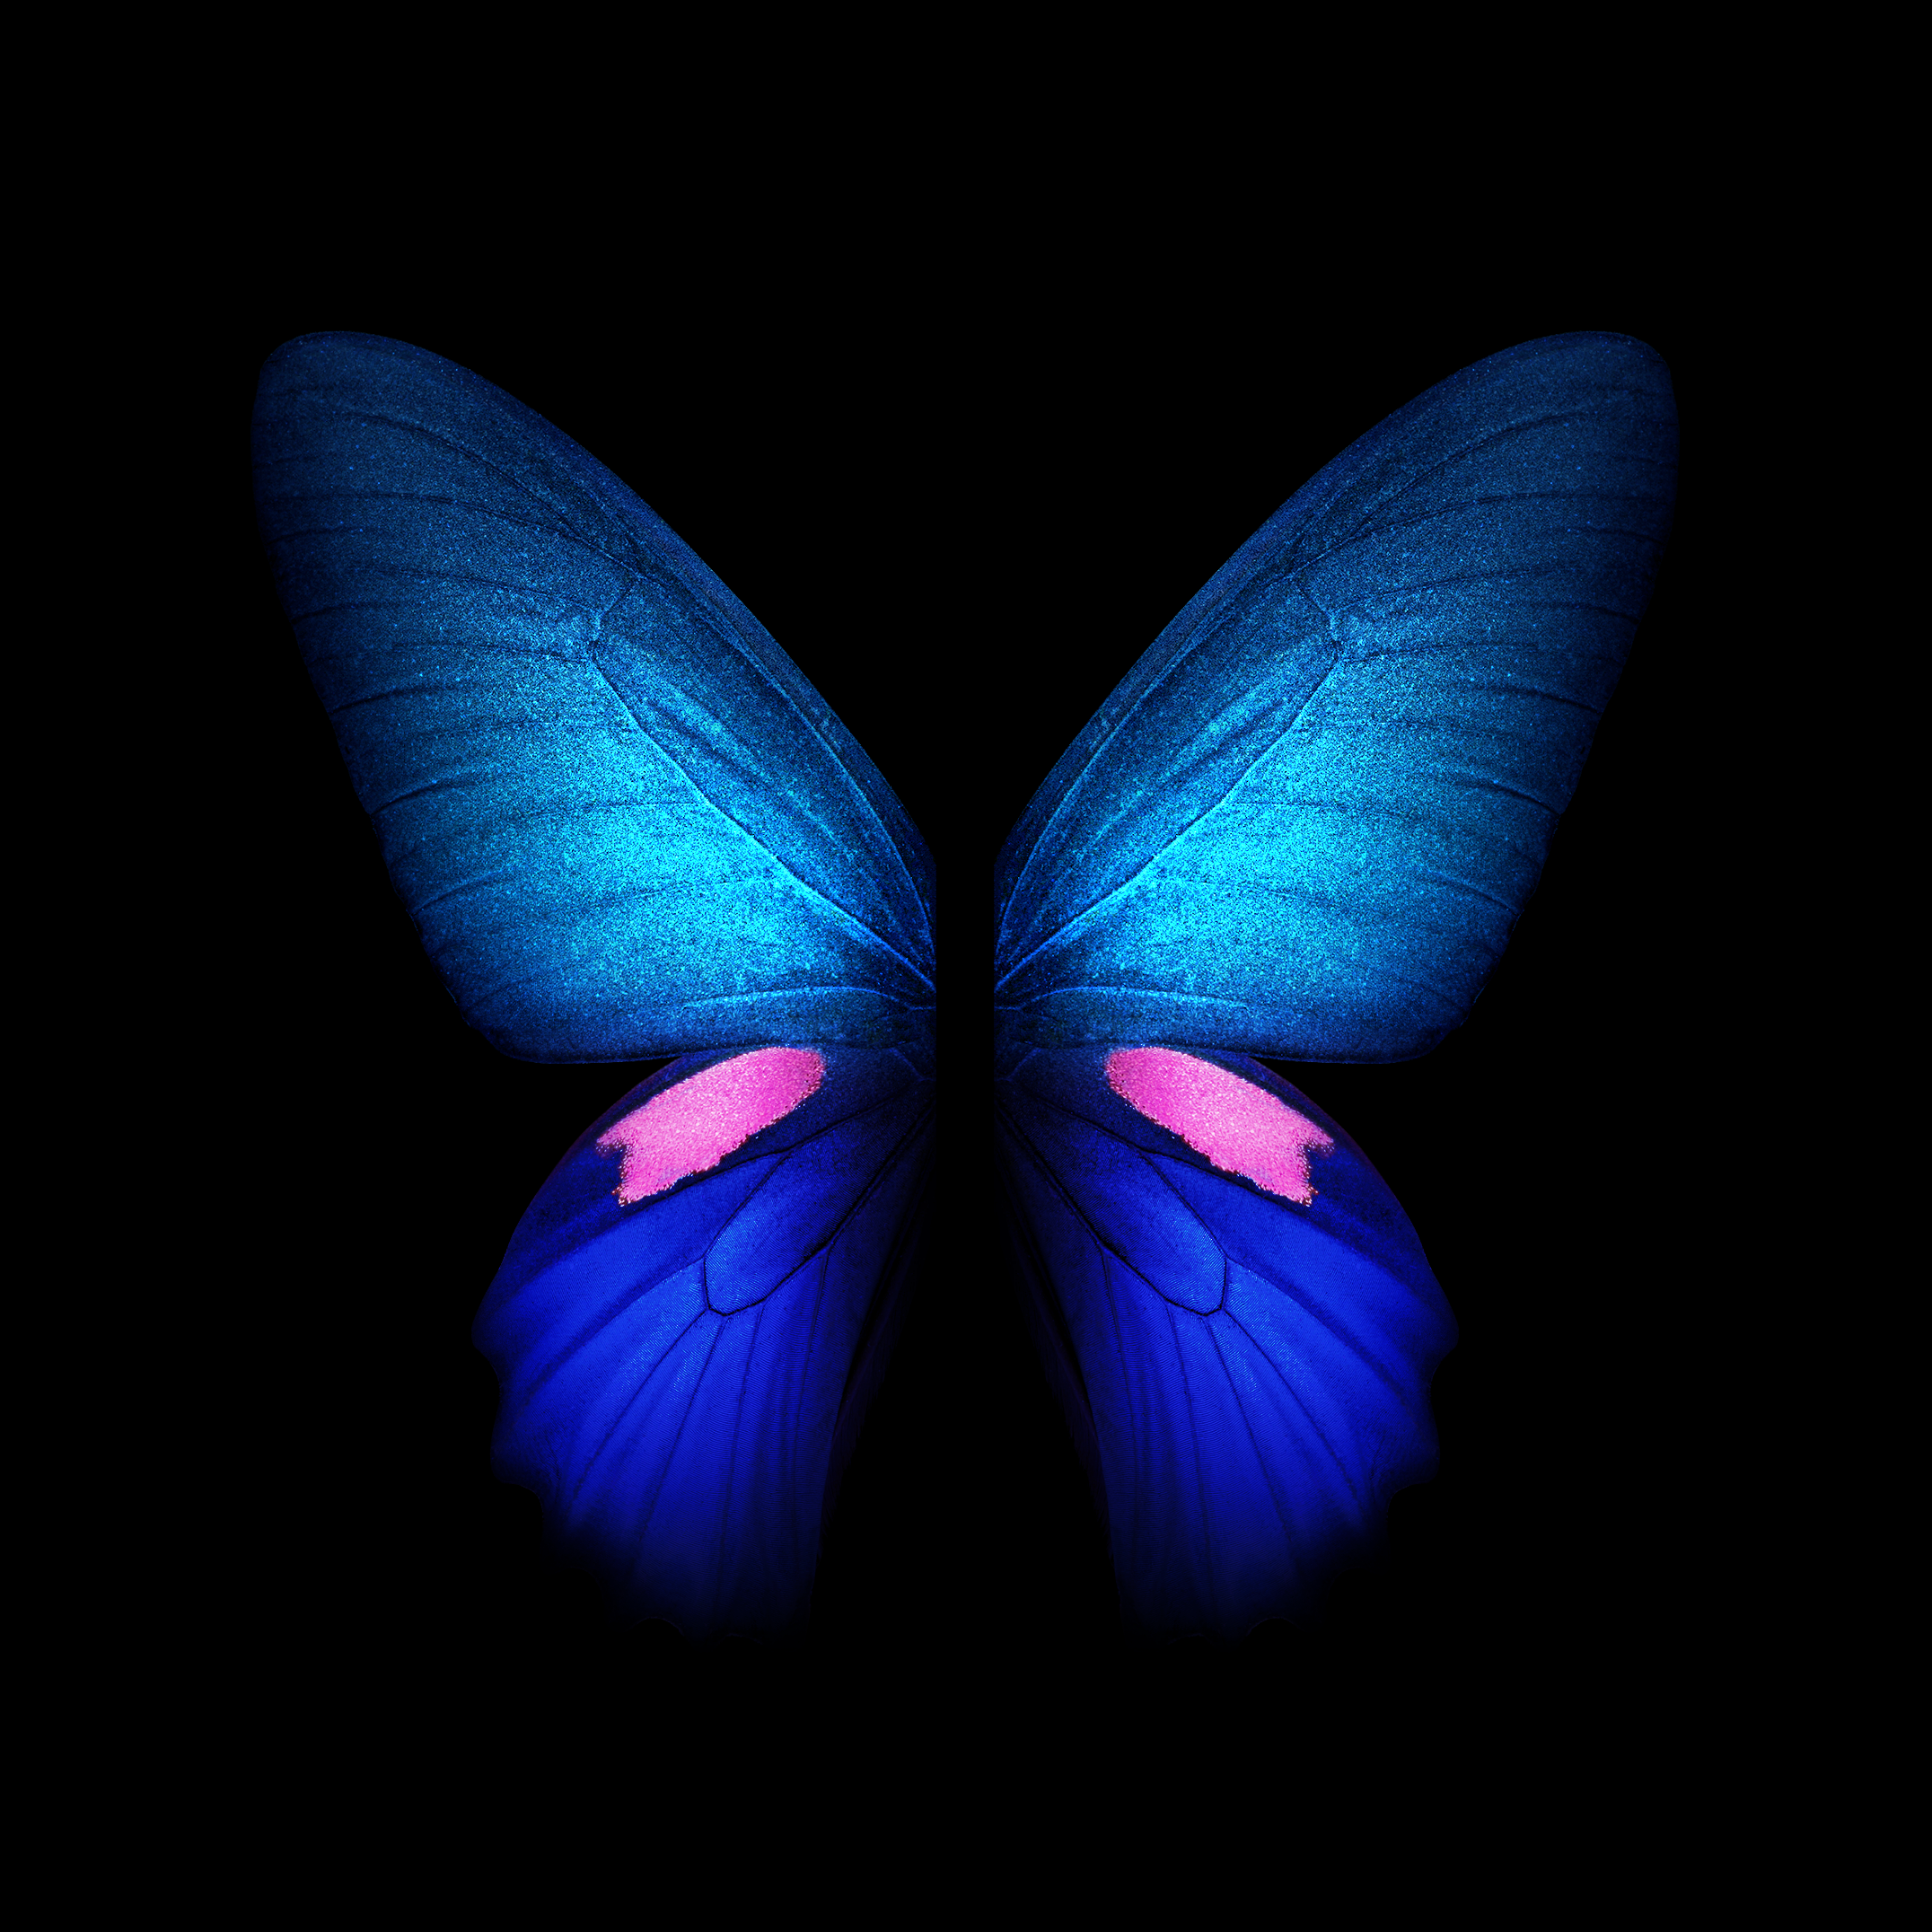 Download Samsung Galaxy Fold wallpapers in full resolution right here 2152x2152